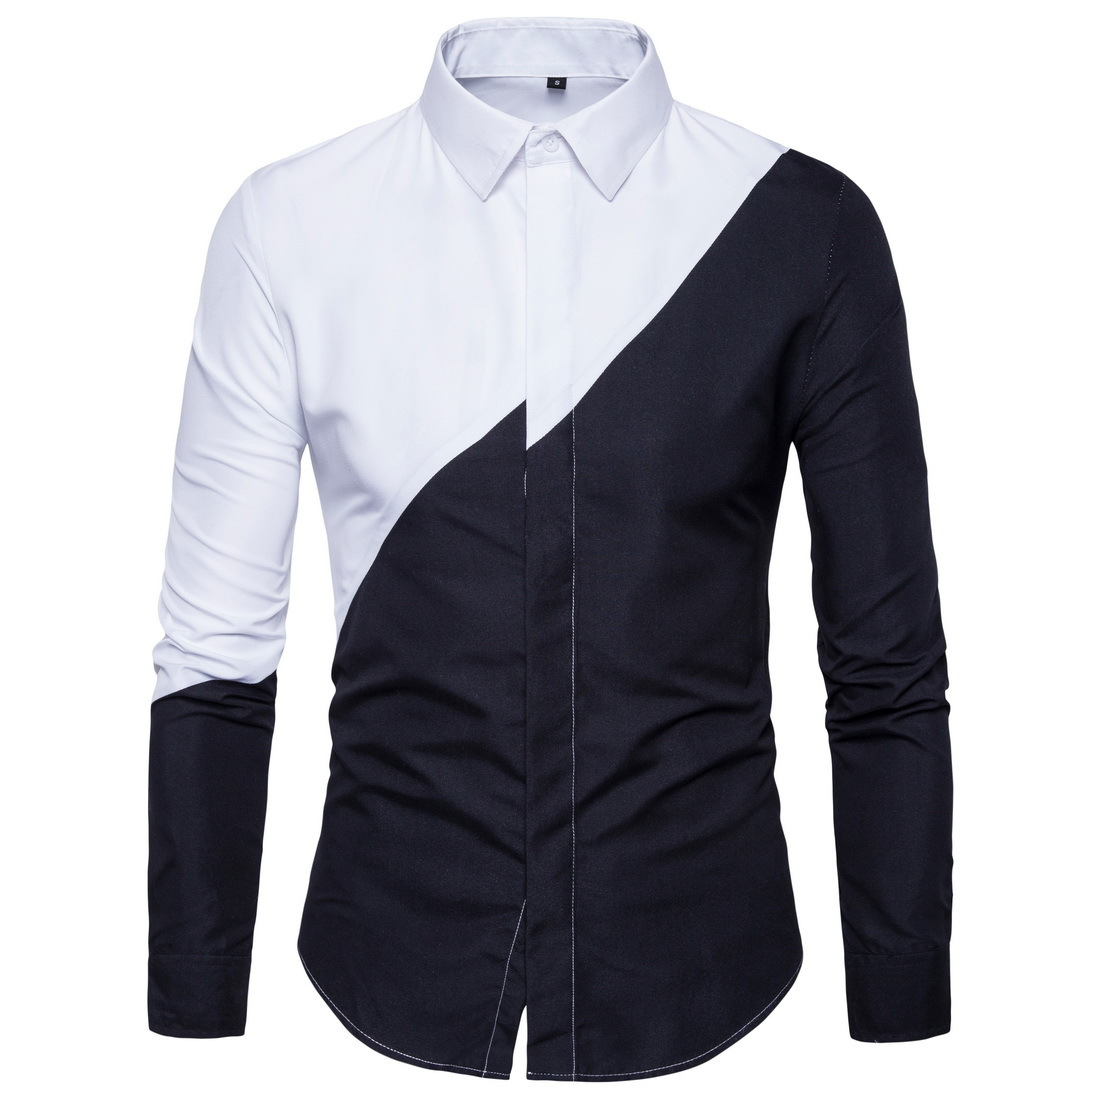 2018 New Style Shirt Men's Youth Trend Black And White Stitching Men Fashion And Personality Long Sleeve Large Size Shirt